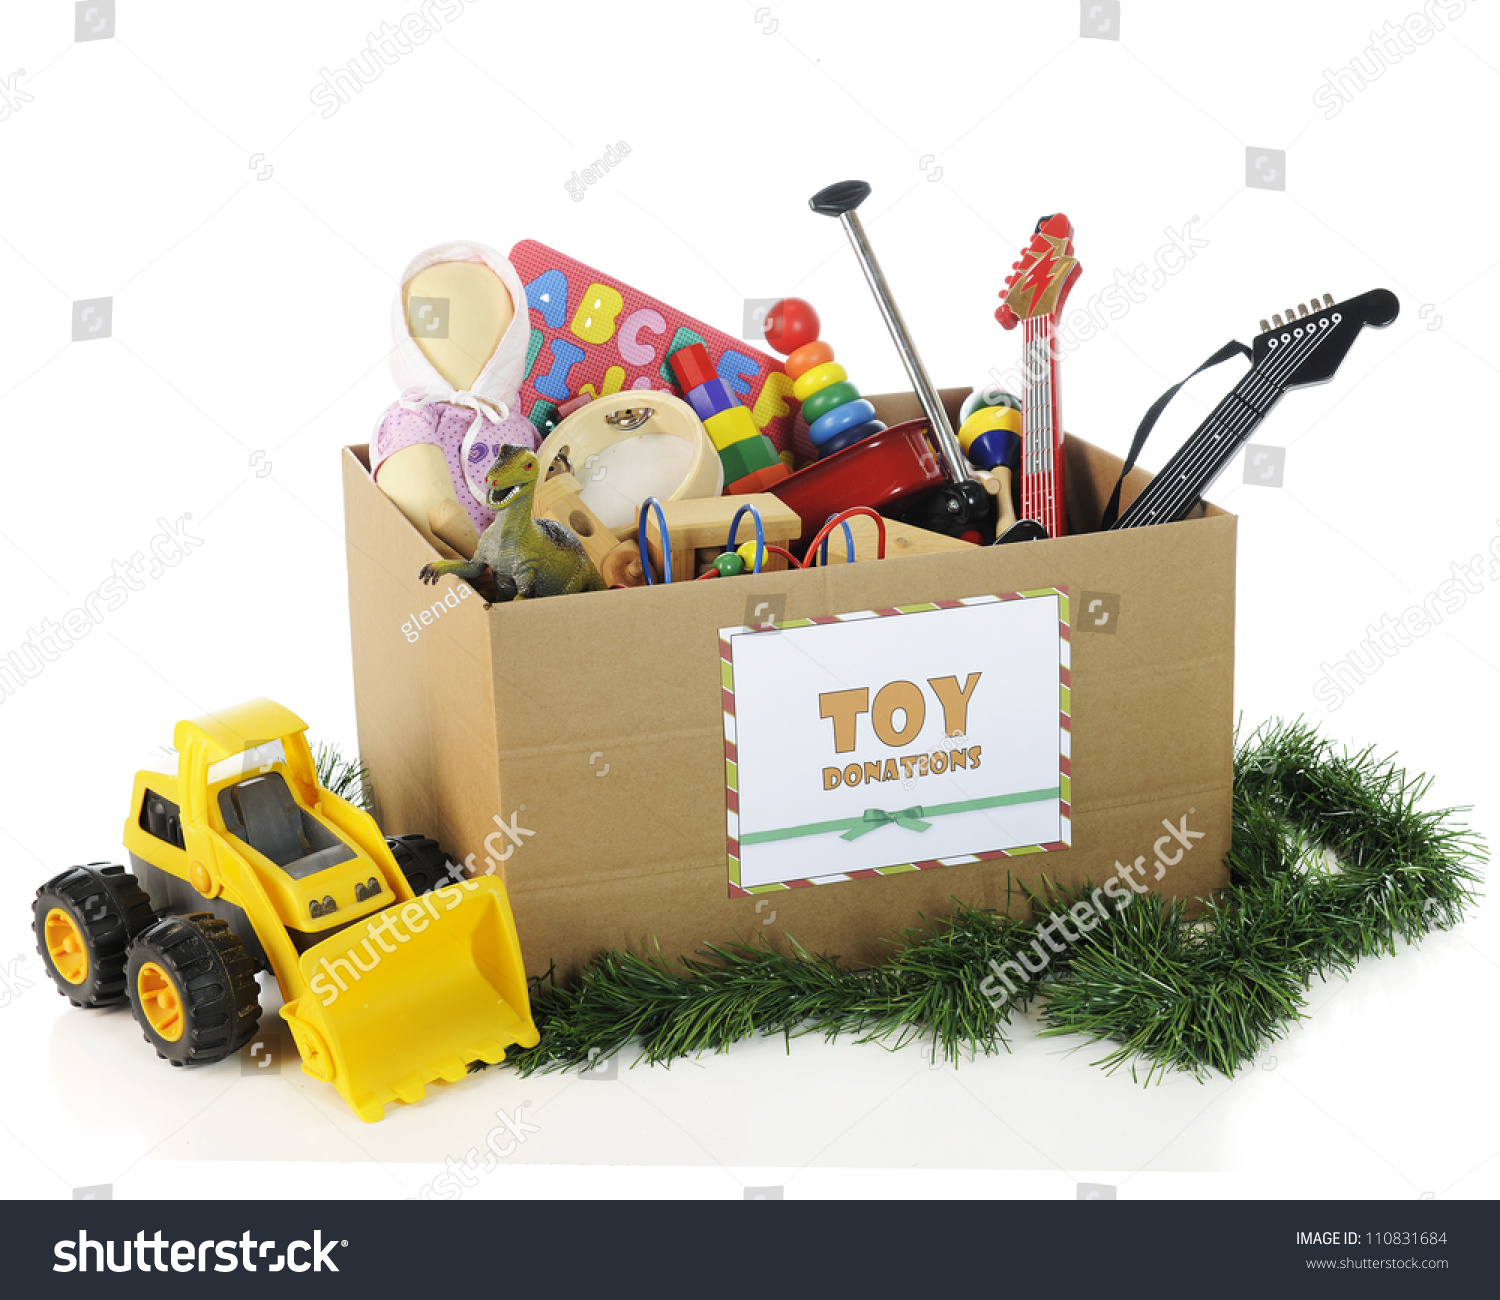 Christmas Toy Box : A box with sign for christmas toy donations filled